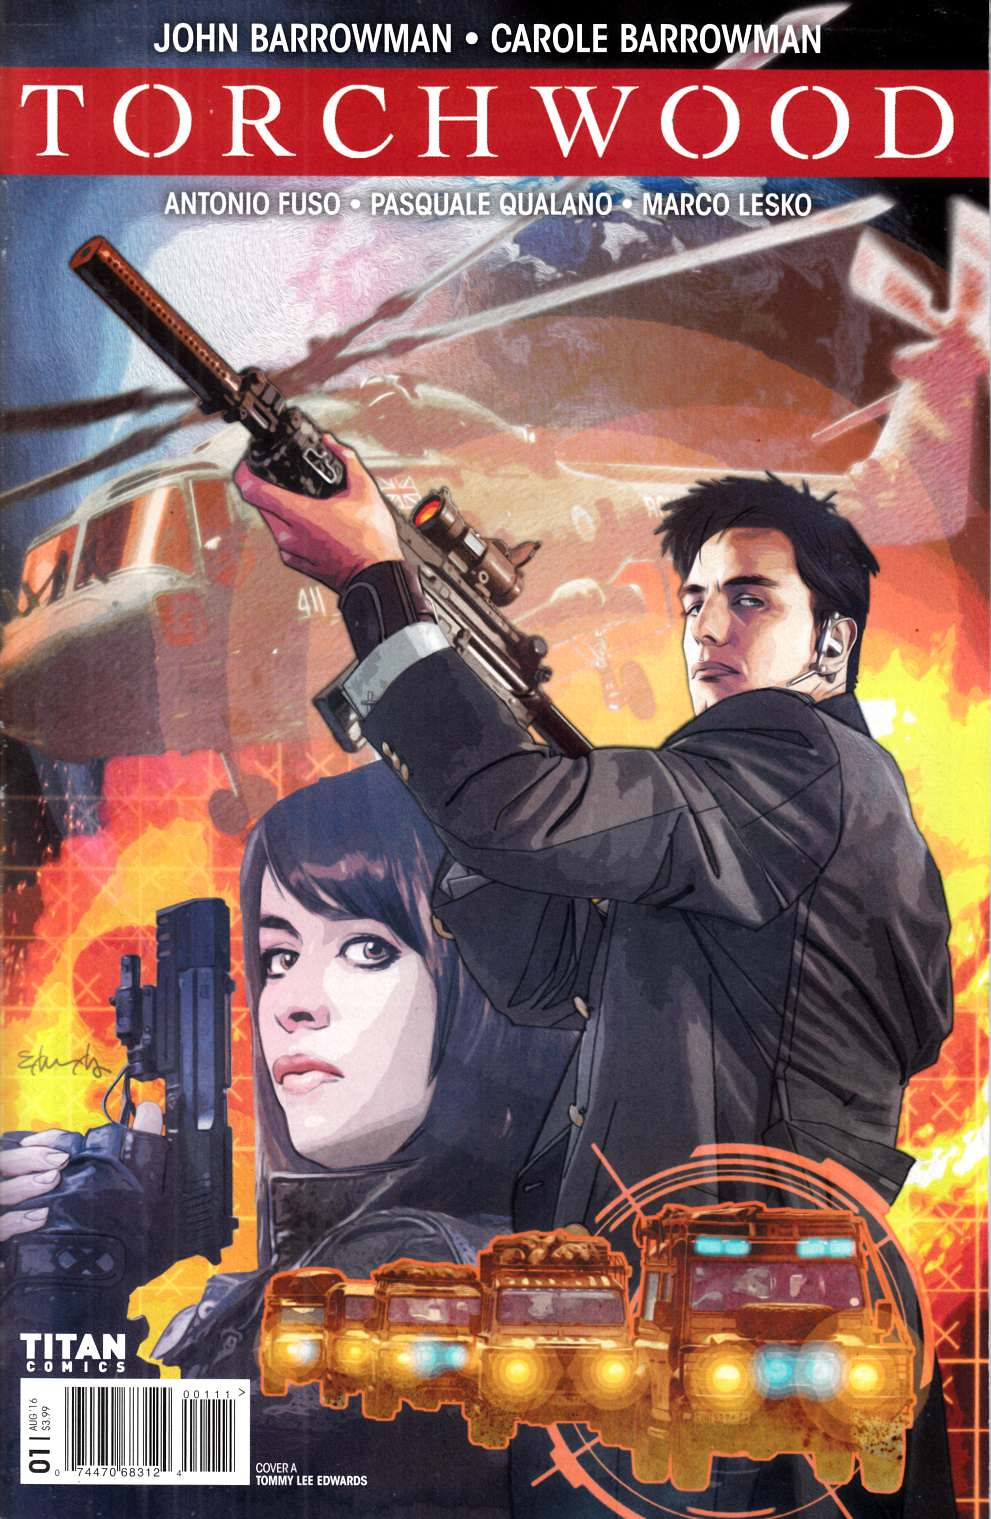 Torchwood #1 Cover A- Edwards [Titan Comic] THUMBNAIL